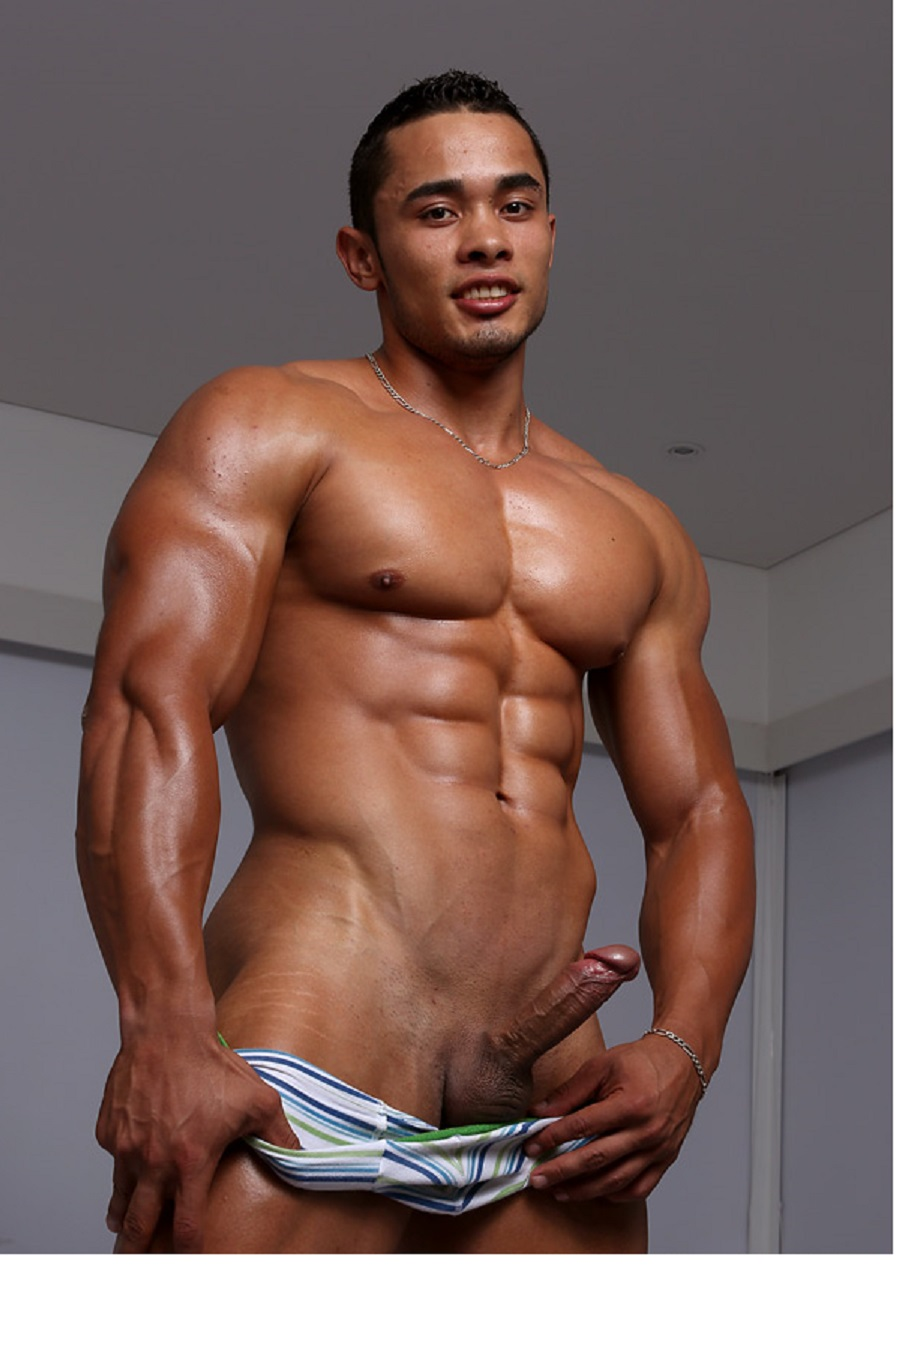 Naked Muscular Men With Erections-8948